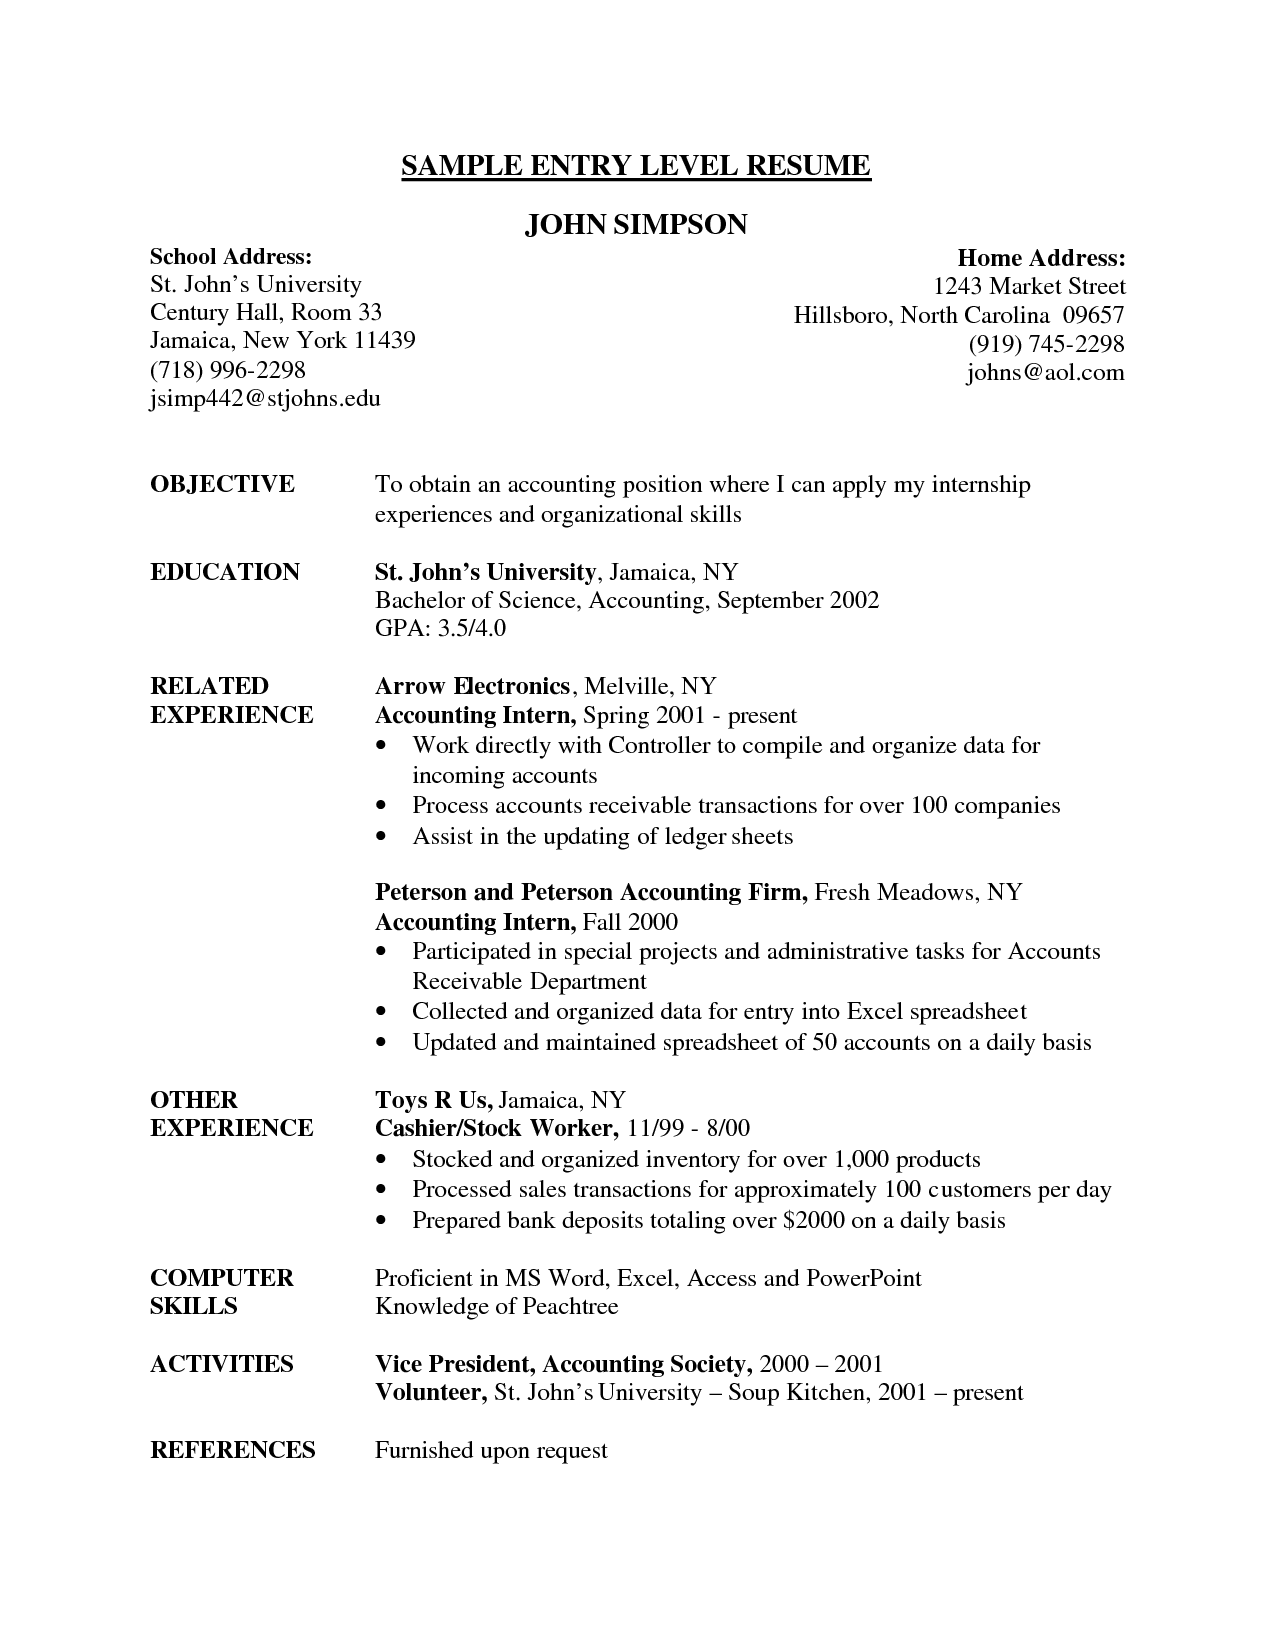 Example Of Resume Profile Entry Level Resumecareer